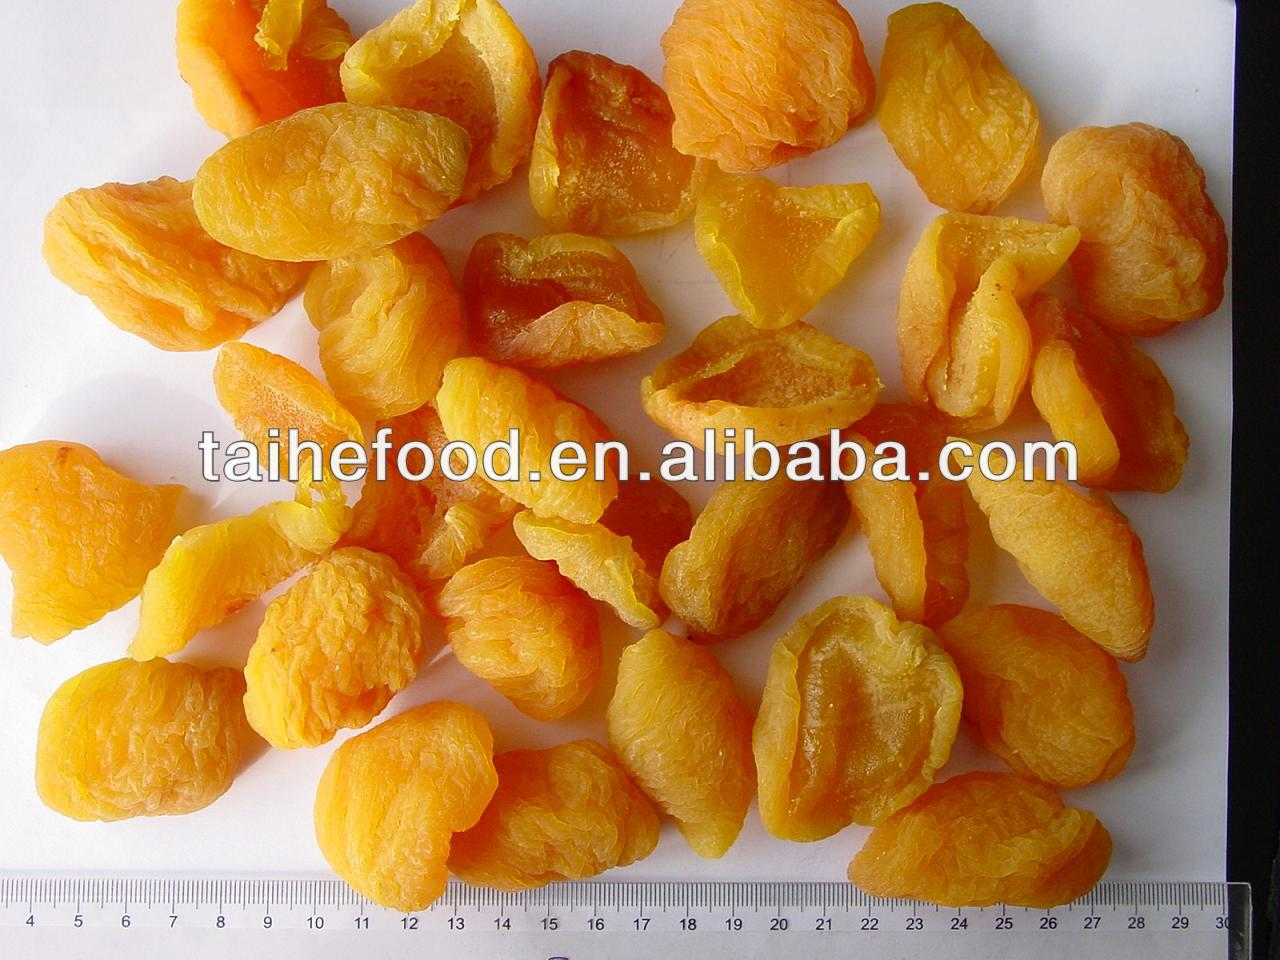 Dried Cherrr/dried Stawberry/dried Pear/dried Apple Rings/dices ...